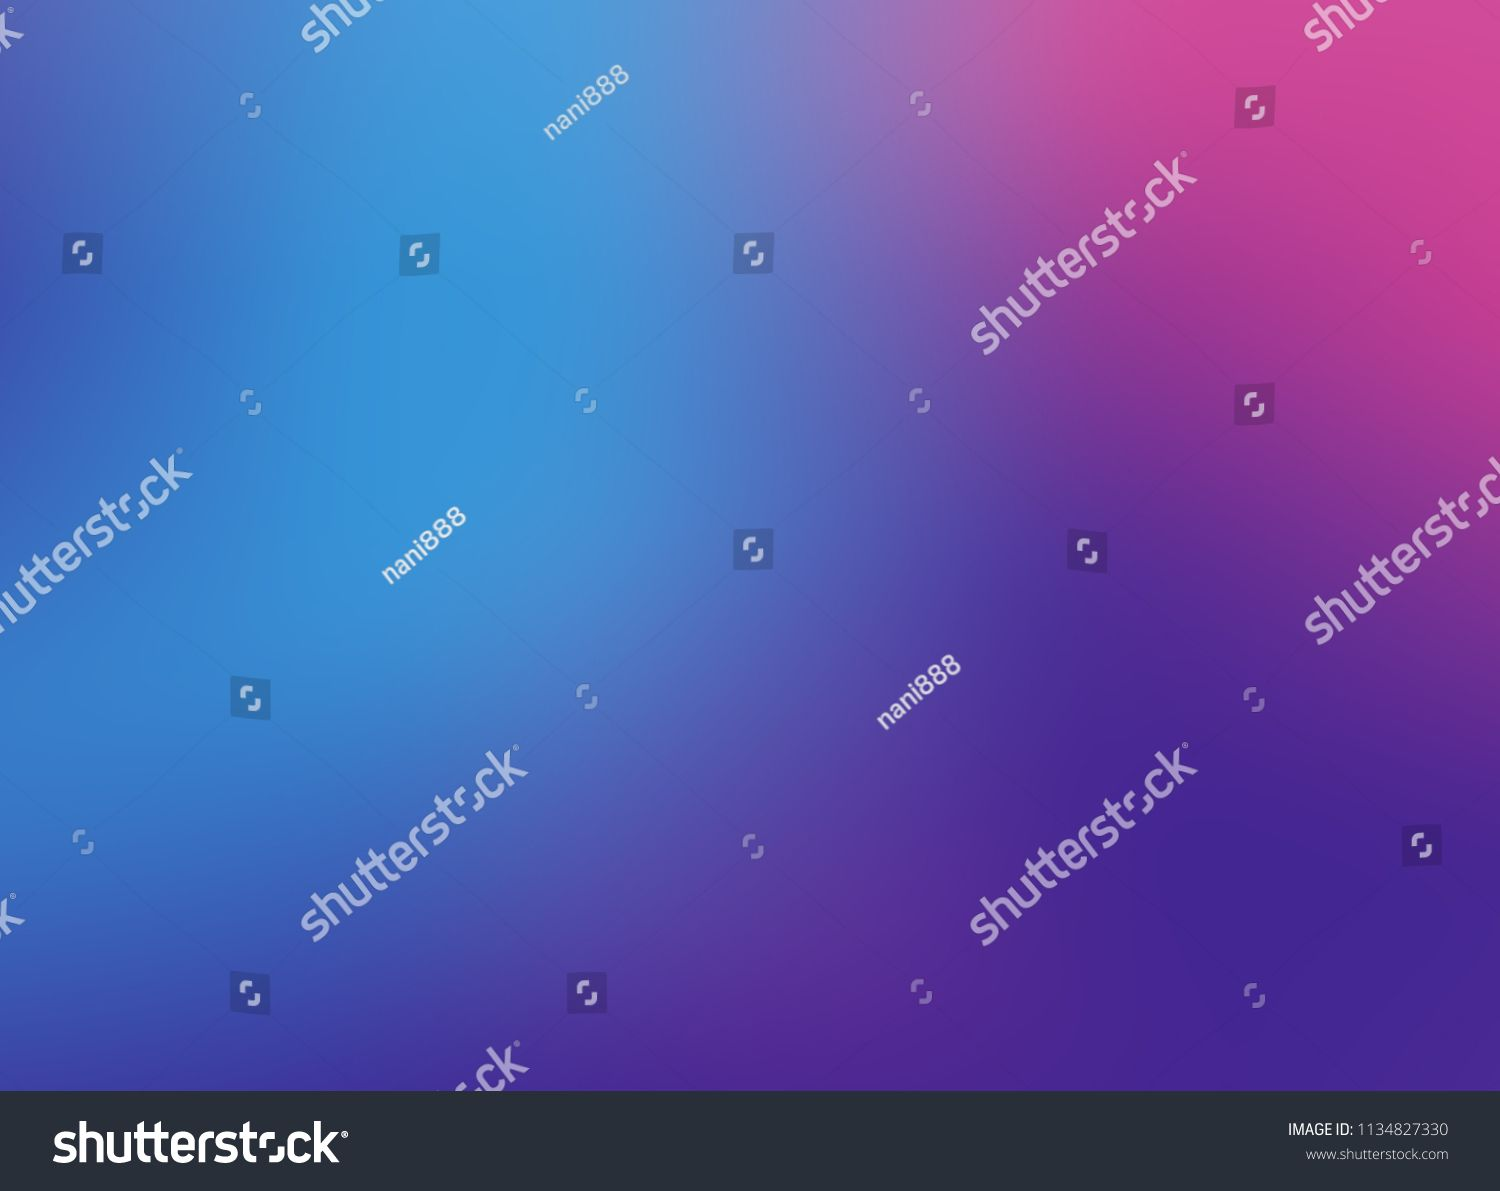 Abstract Blue And Purple Blur Background Gradient Design Purple Blue Abstract Blur Blurred Background Blue Backgrounds Gradient Design